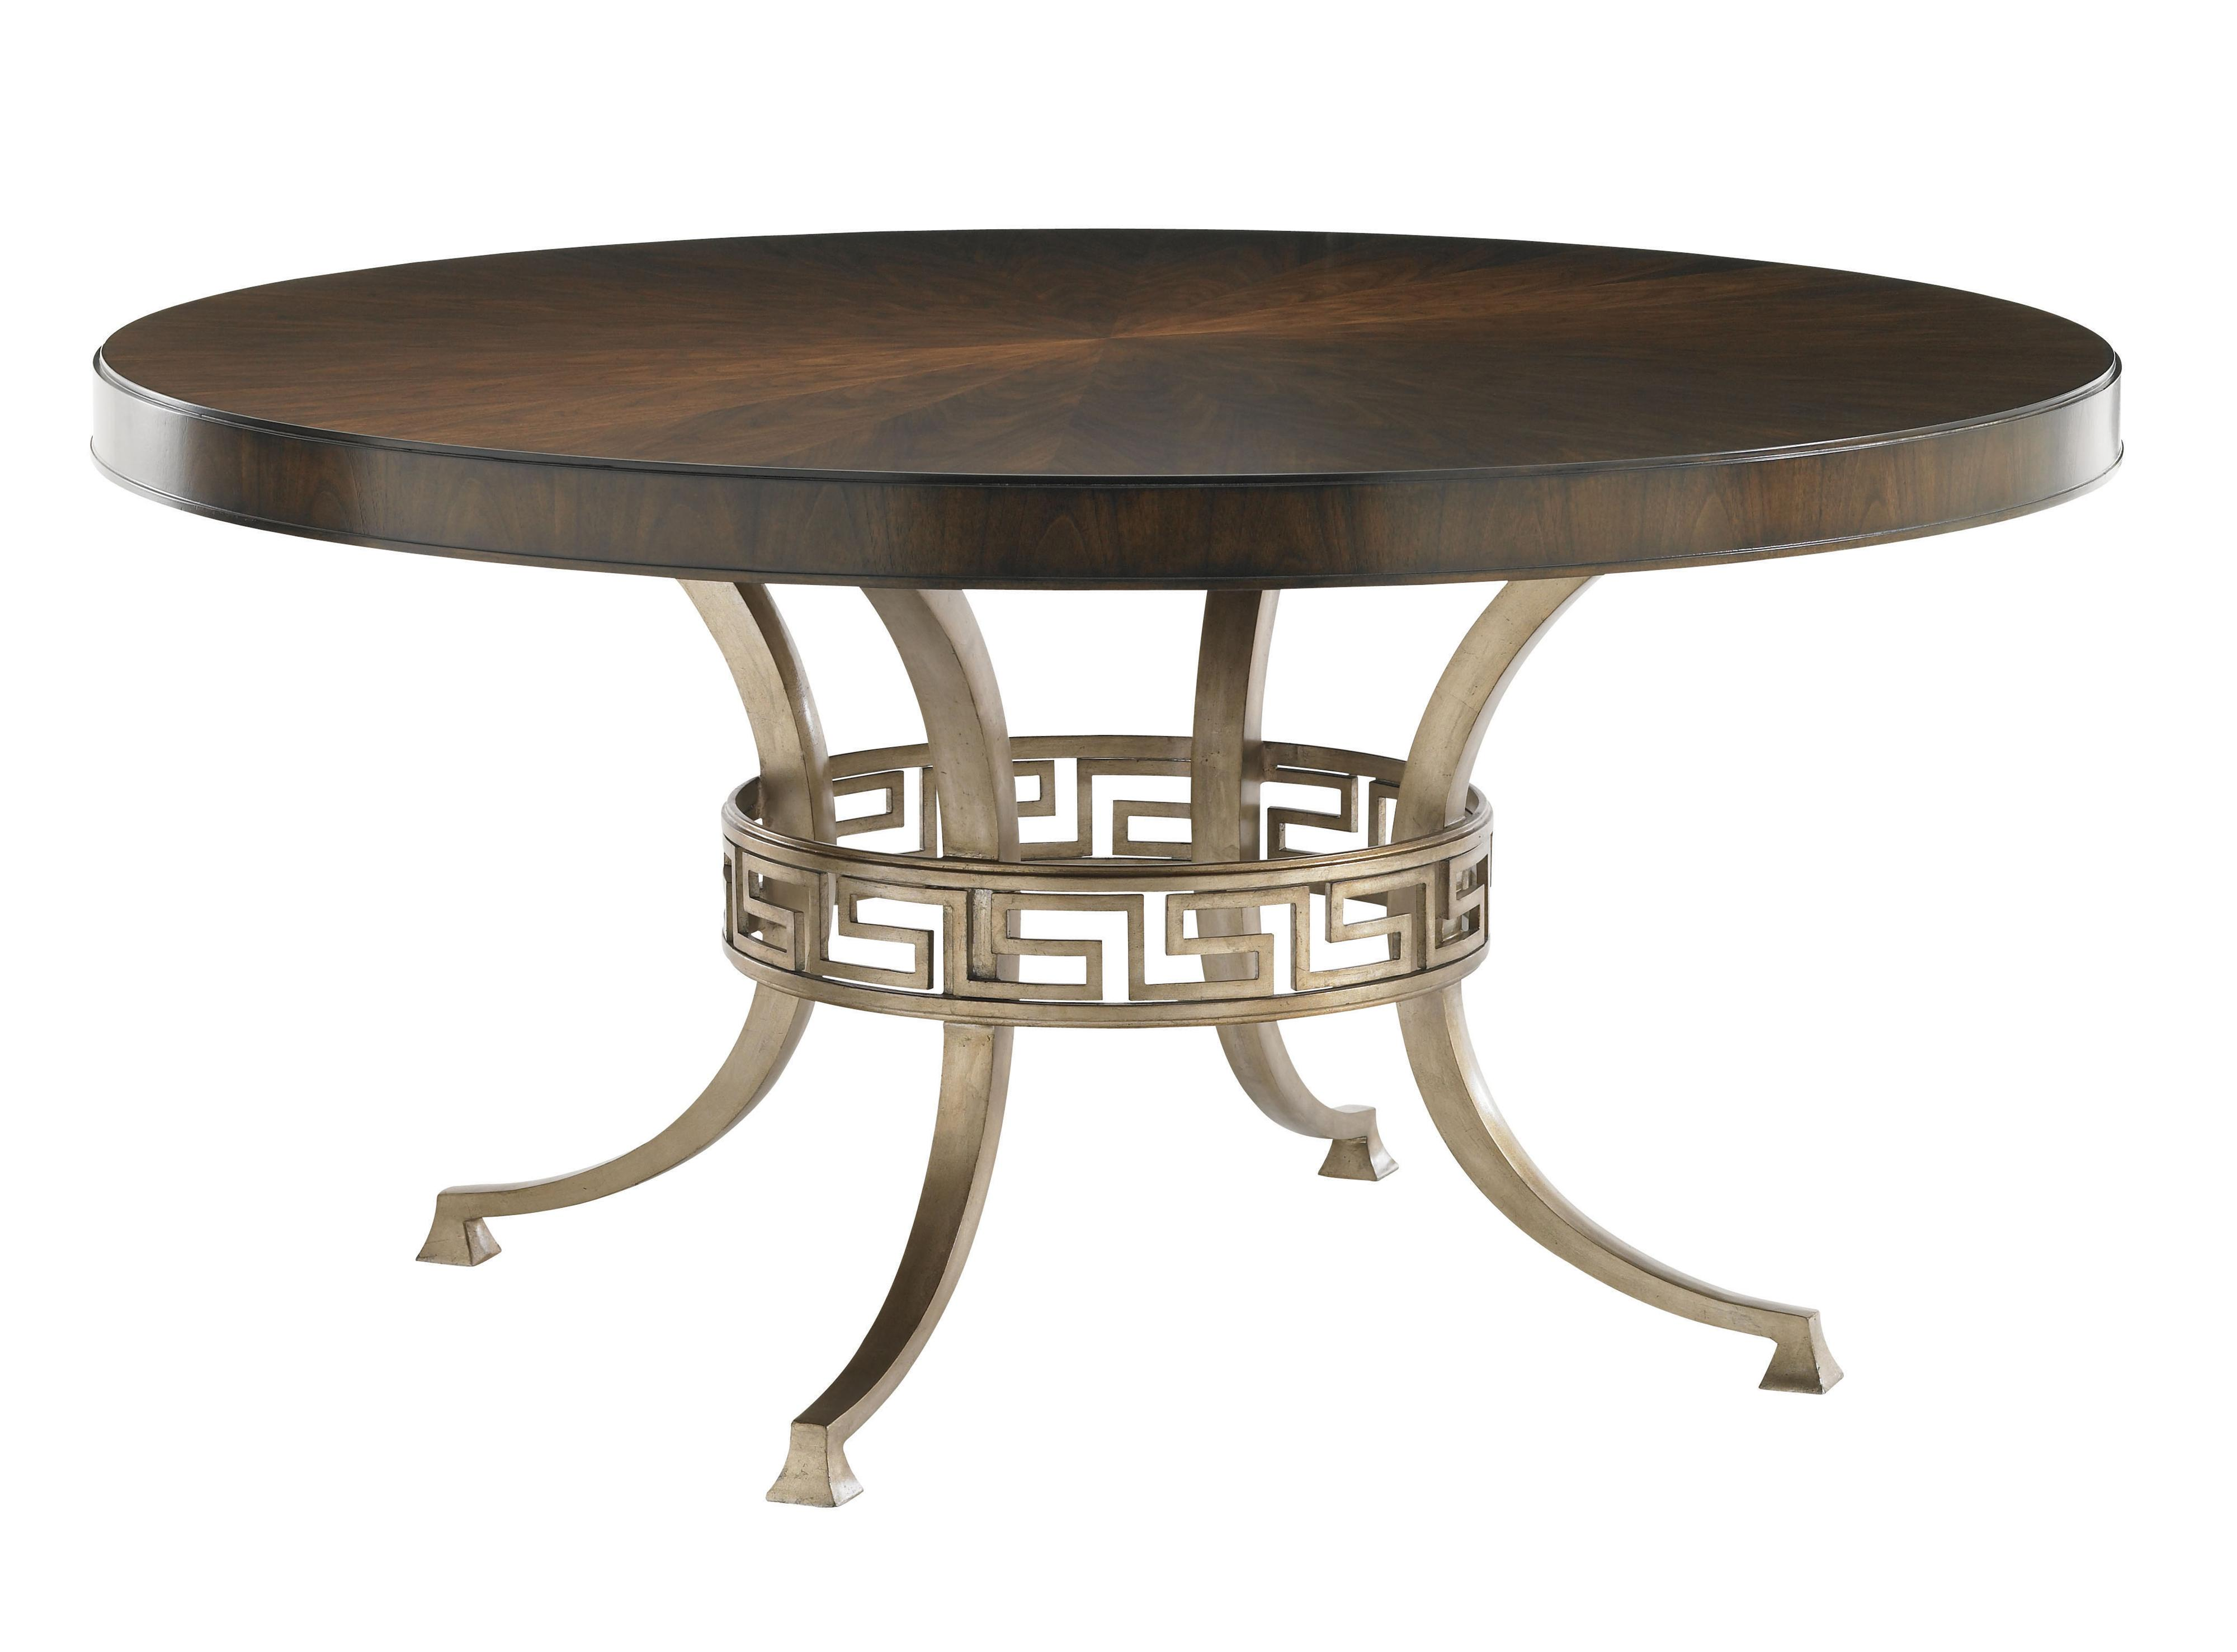 Tower Place Regis Round Dining Table by Lexington at Johnny Janosik